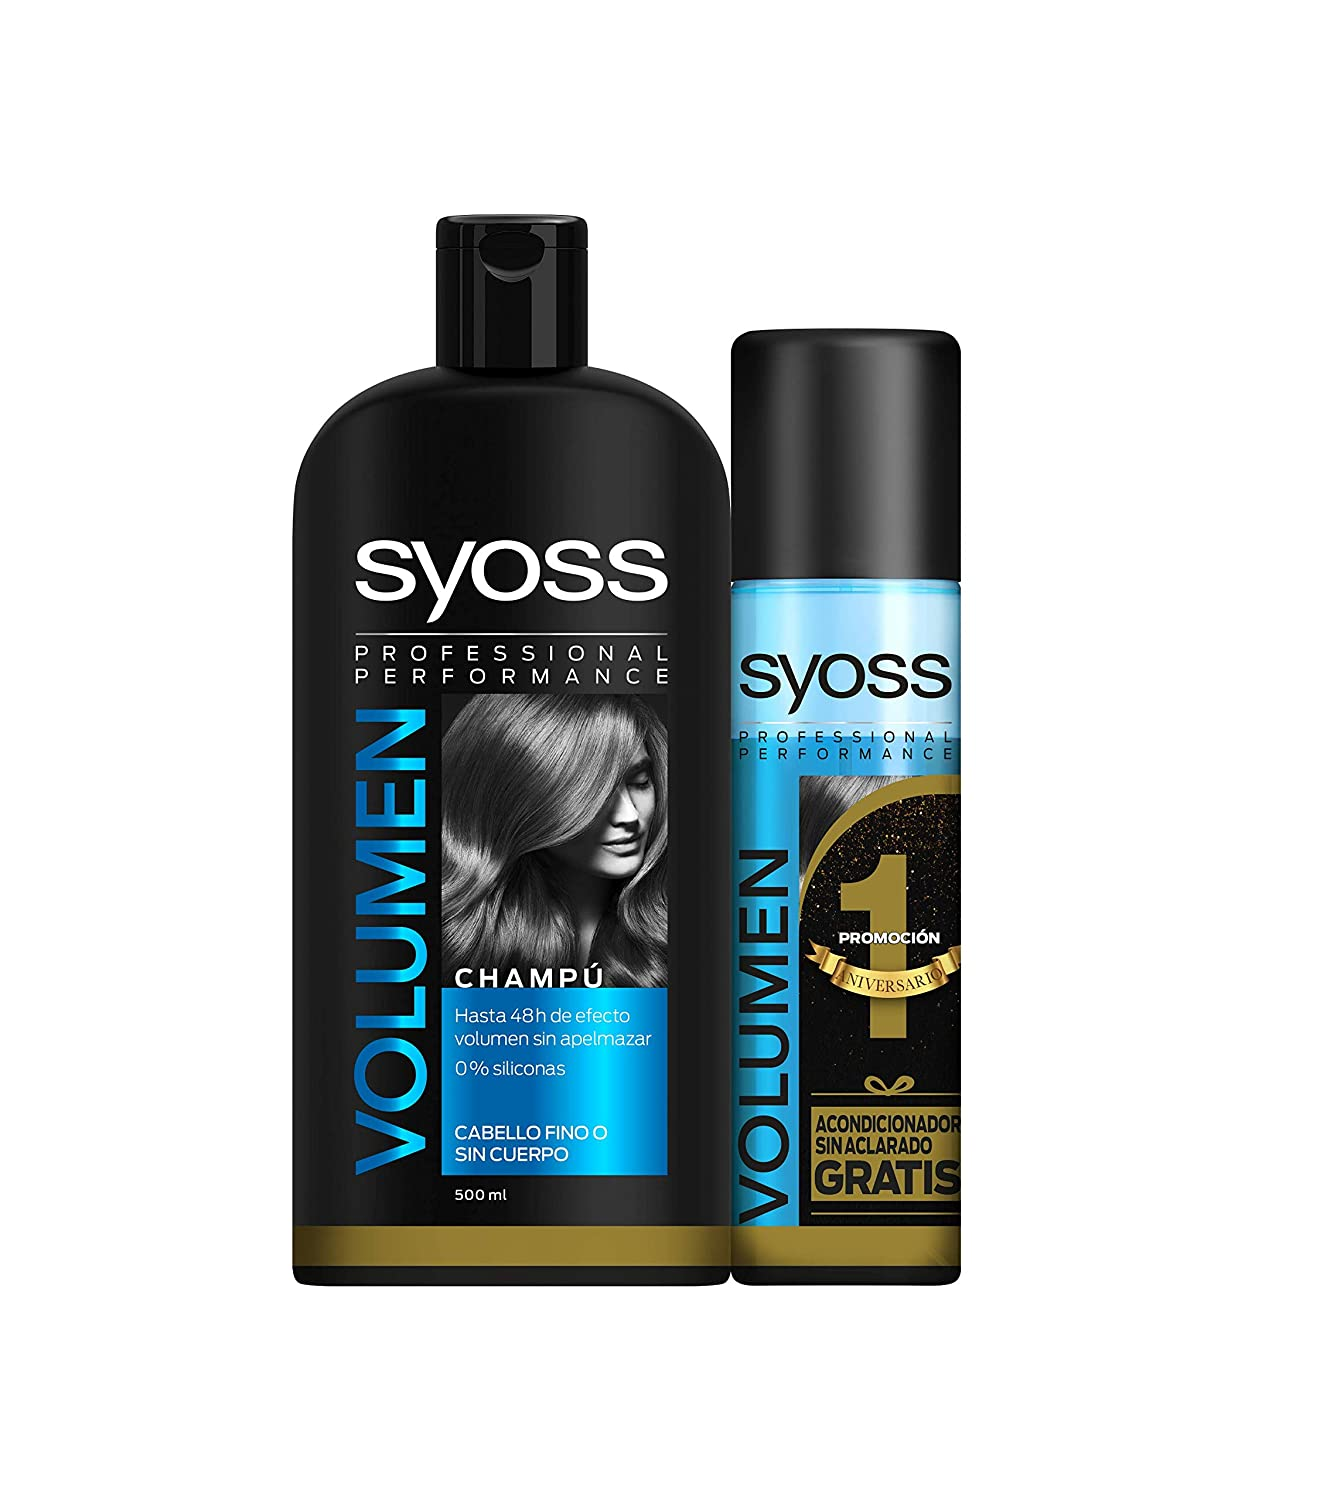 Syoss - Champú 500ml + Acondicionador Volumen 200ml